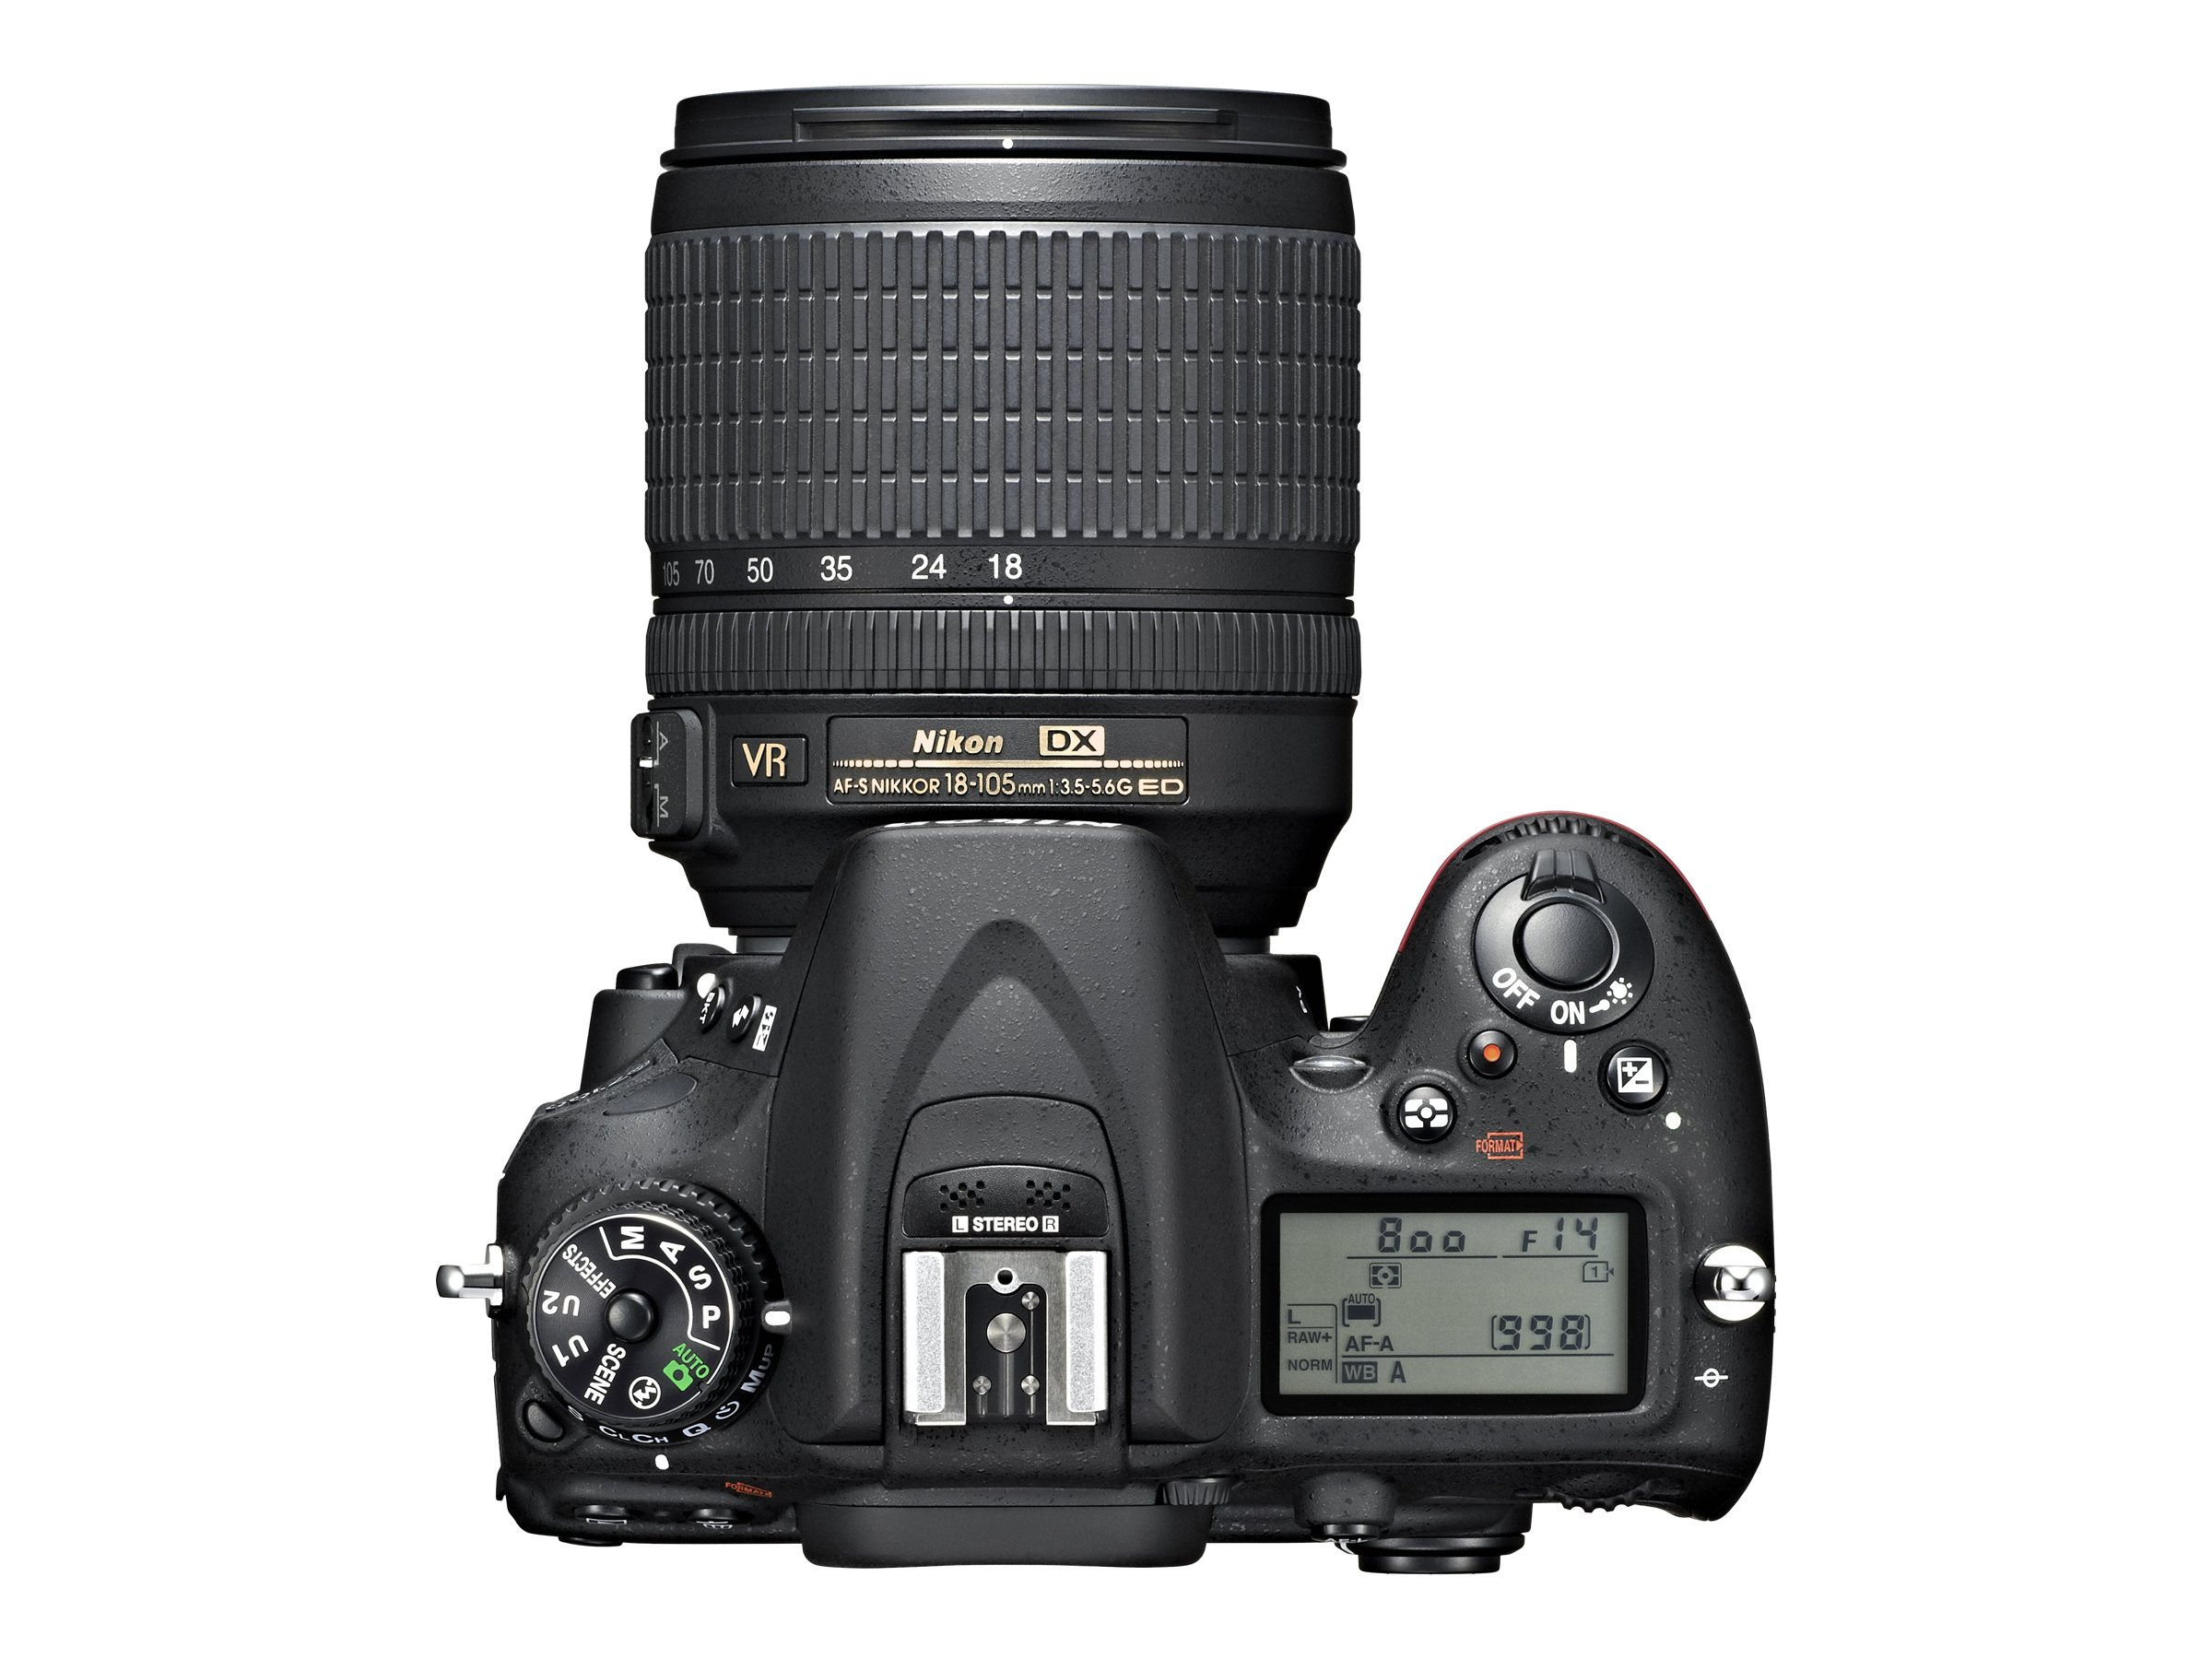 Nikon D7100 DSLR Camera Kit w  18-105mm f 3.5-5.6G ED VR DX Lens, Battery & Charger, 1515